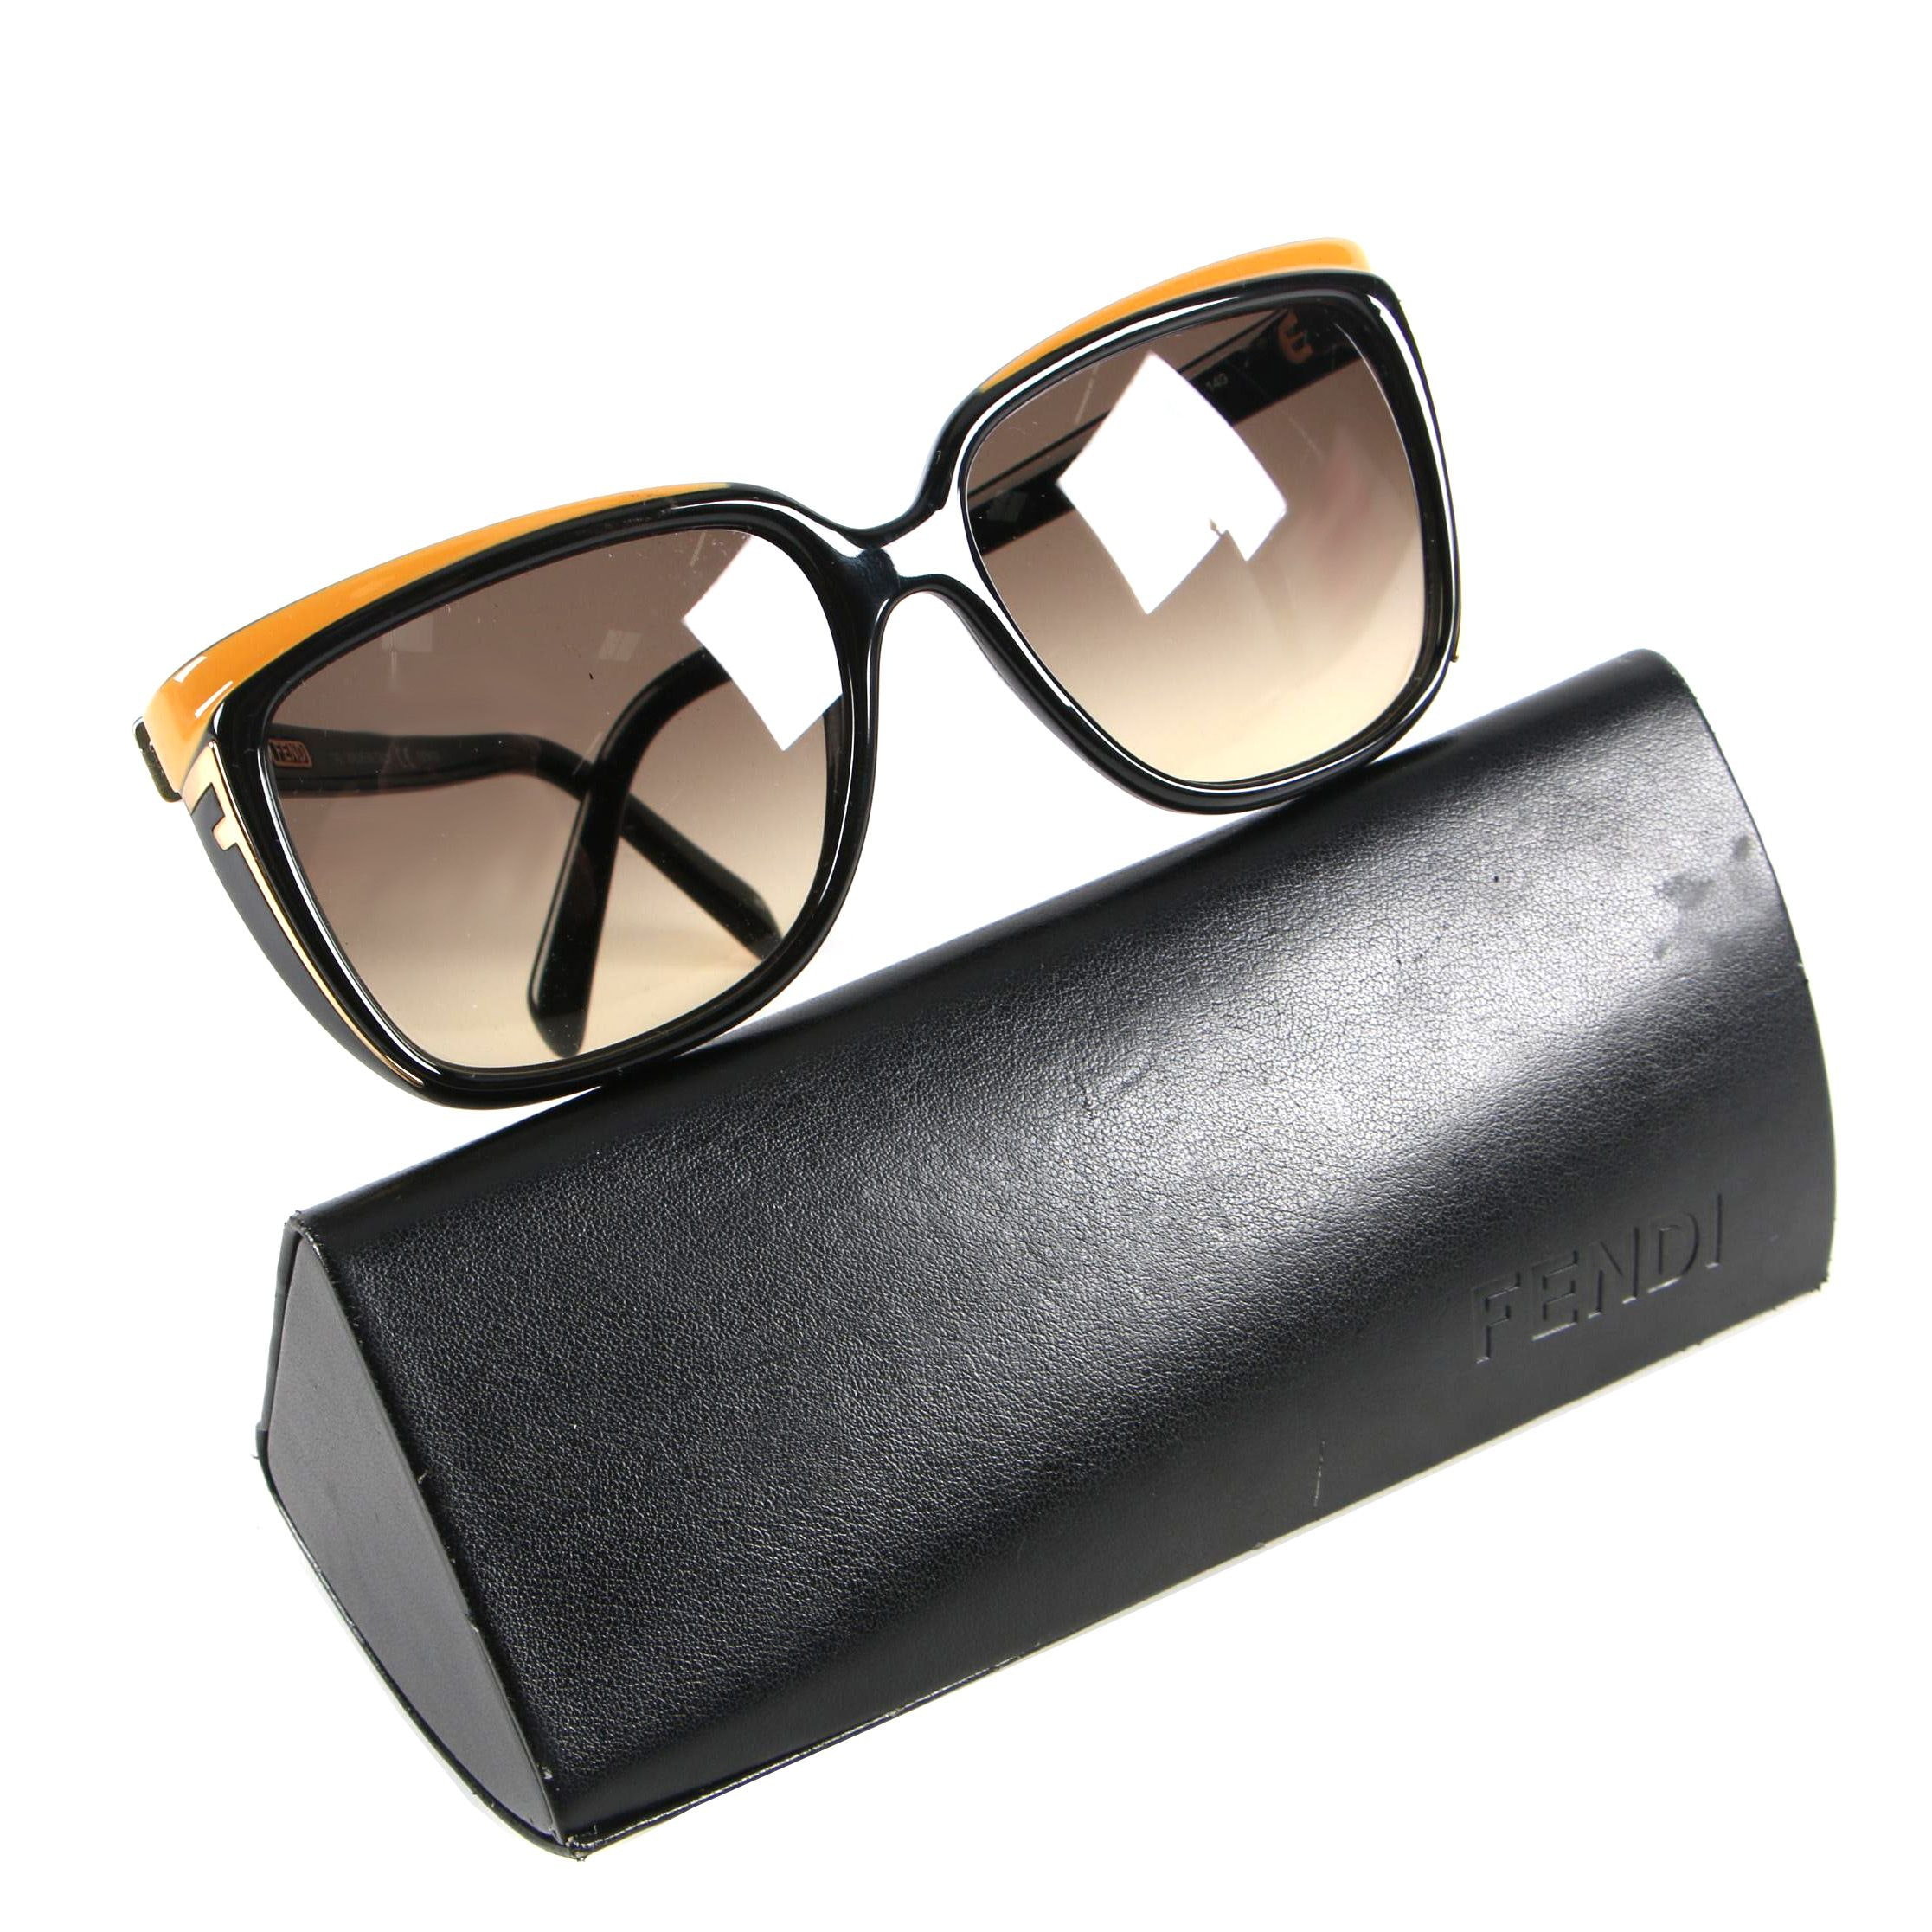 Fendi FS5282 Black and Yellow Sunglasses with Case